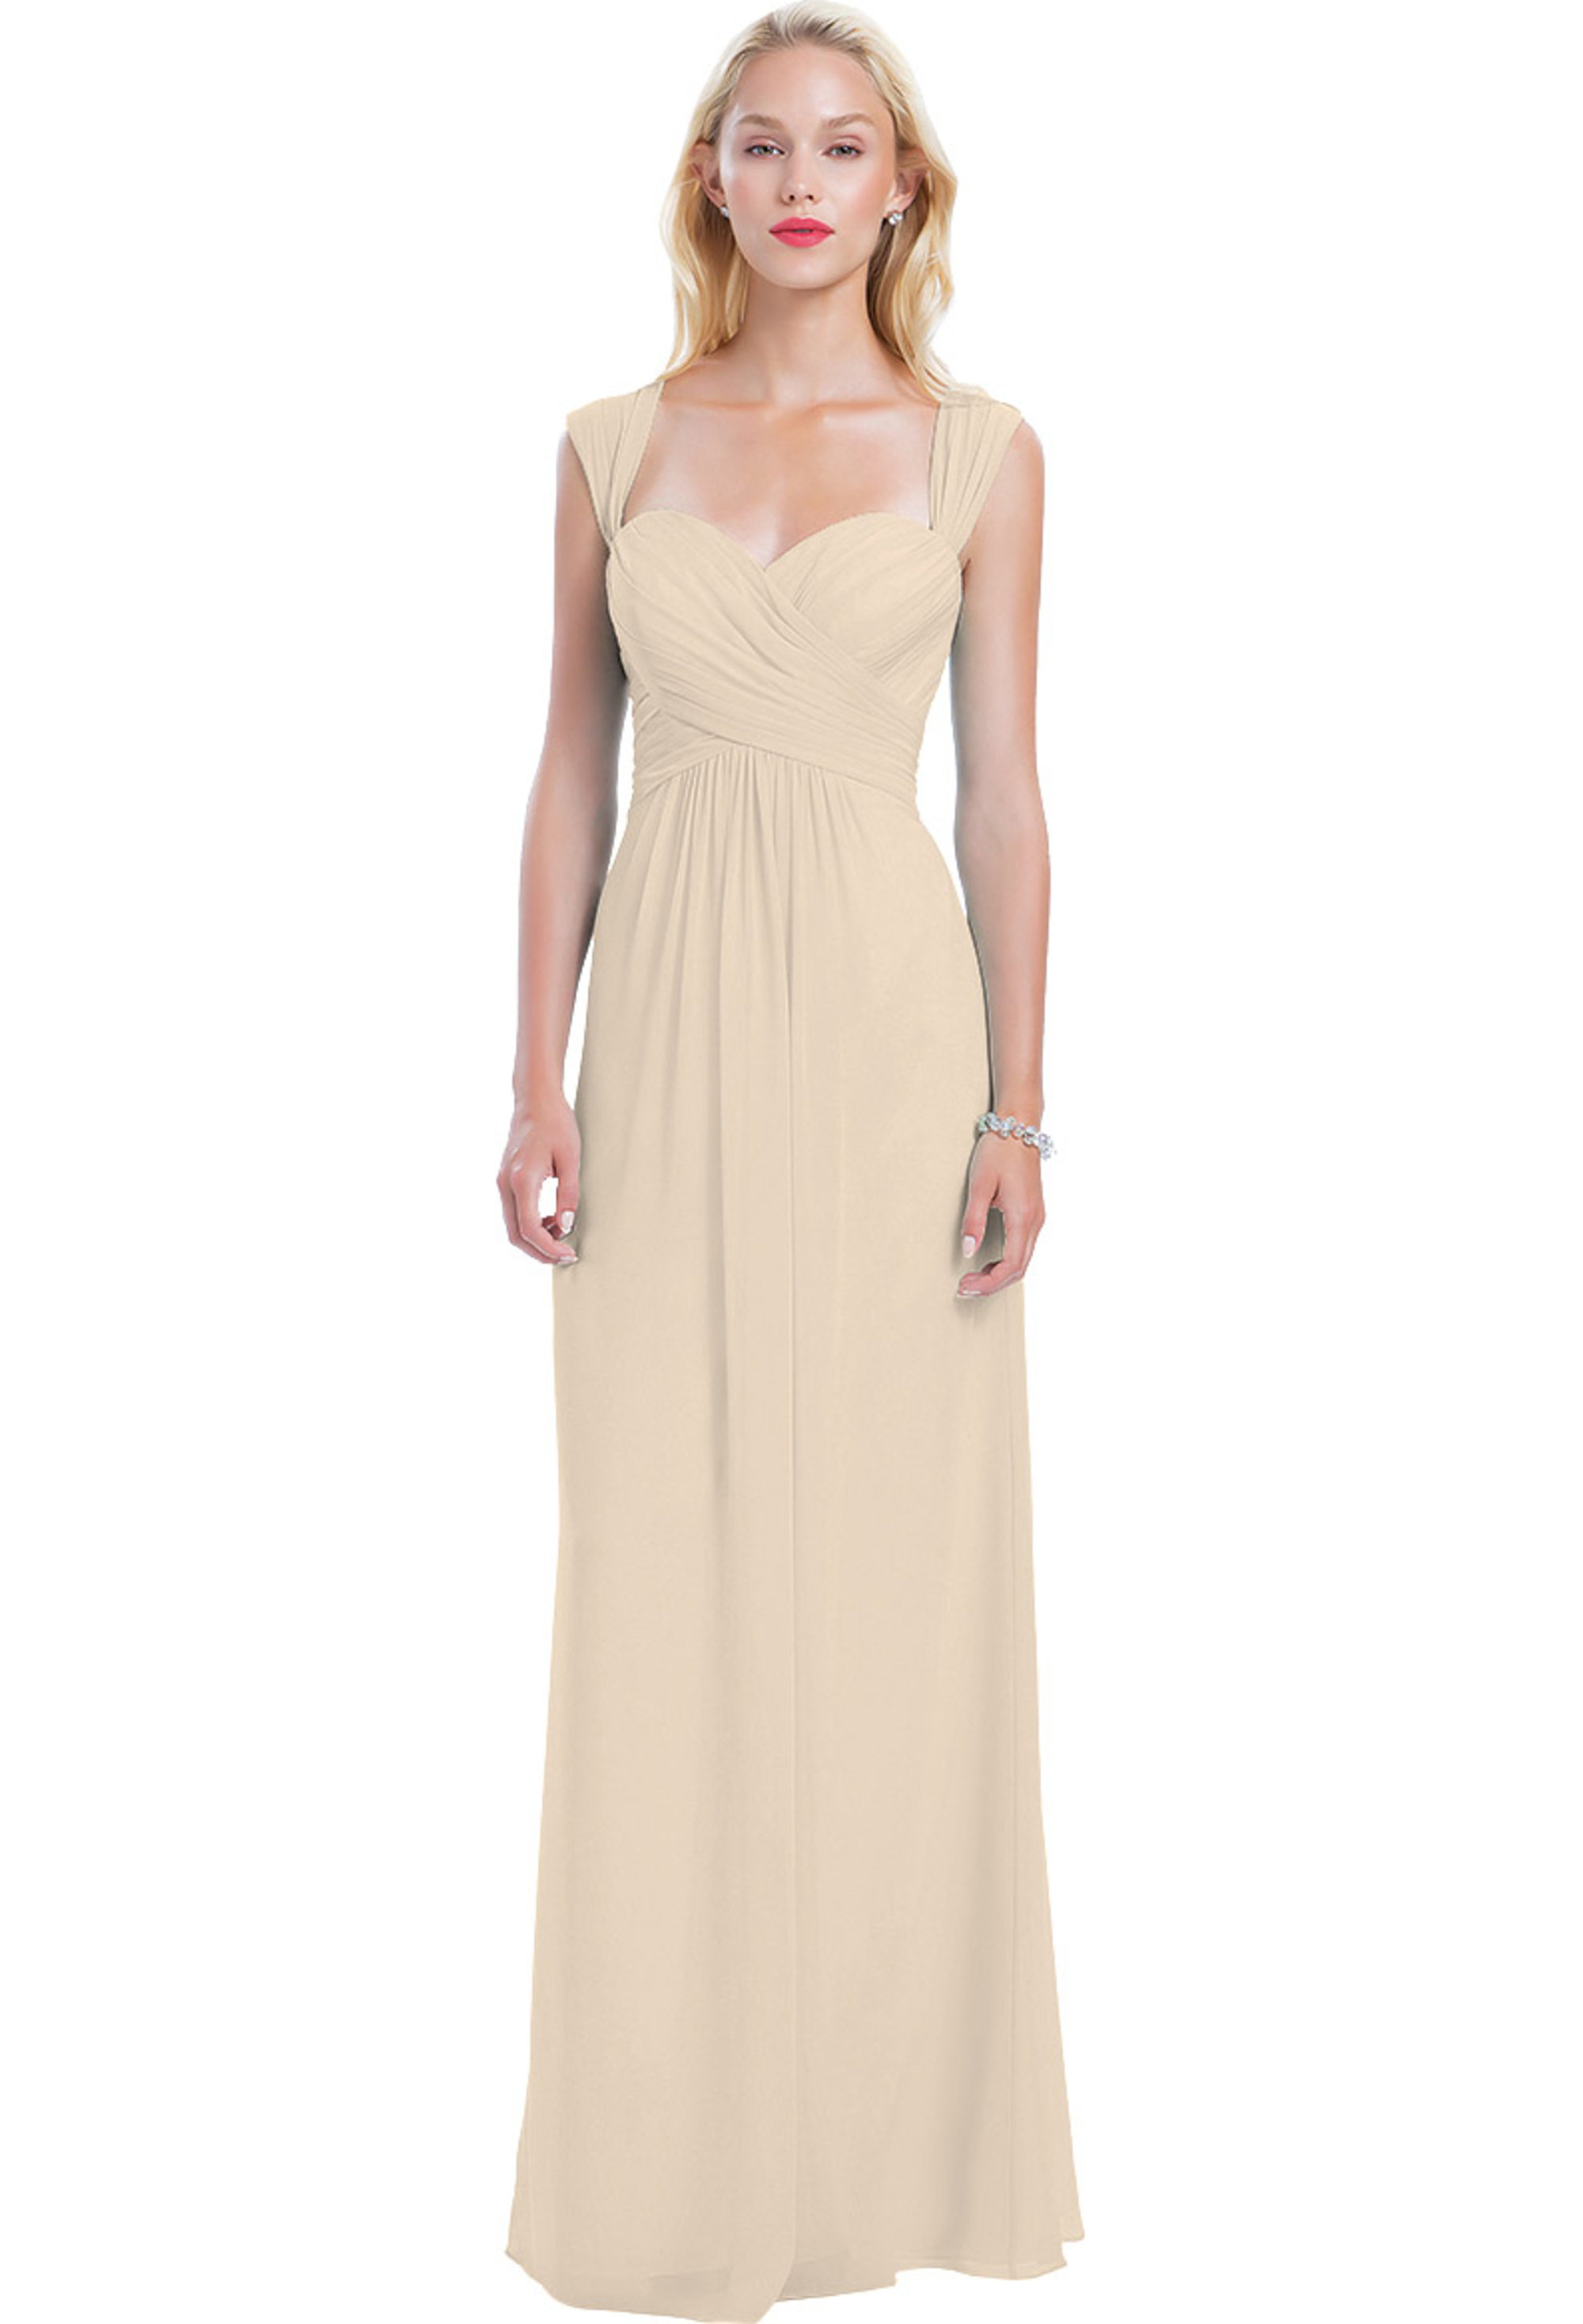 Bill Levkoff CHAMPAGNE Chiffon Sweetheart A-line gown, $210.00 Front